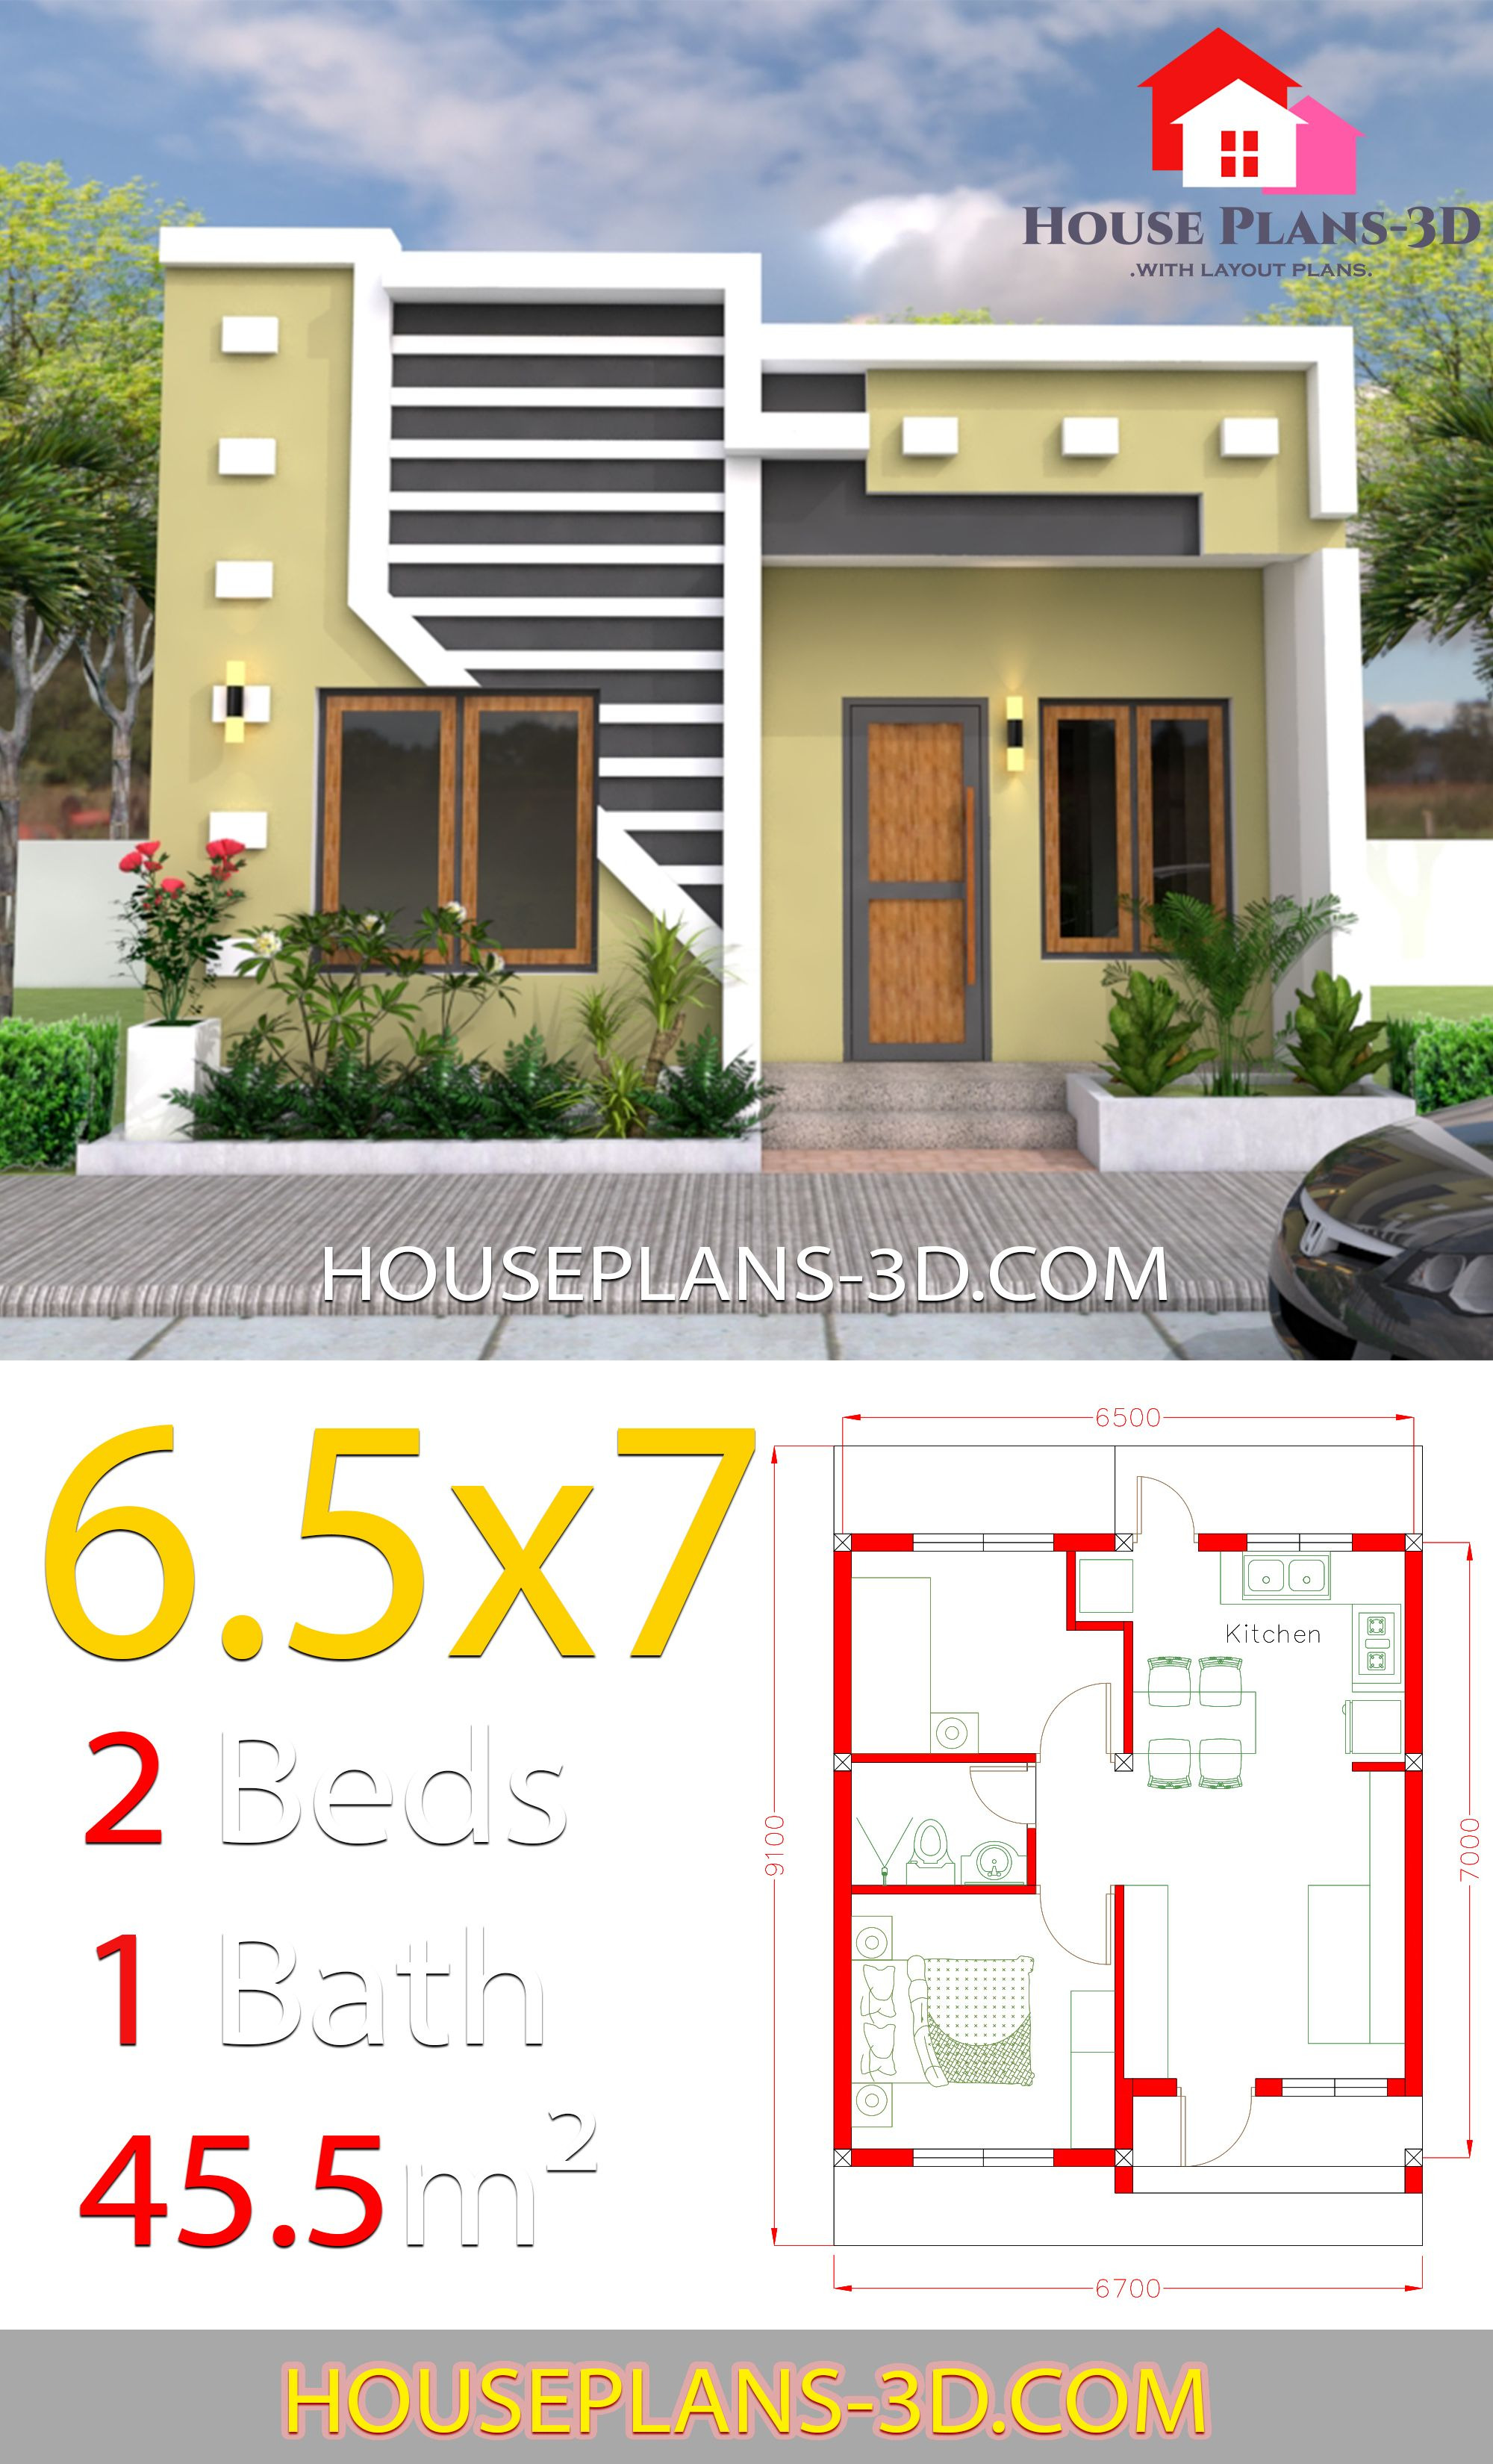 Small House Design Pictures Beautiful Small House Design 6 5x7 with 2 Bedrooms Full Plans